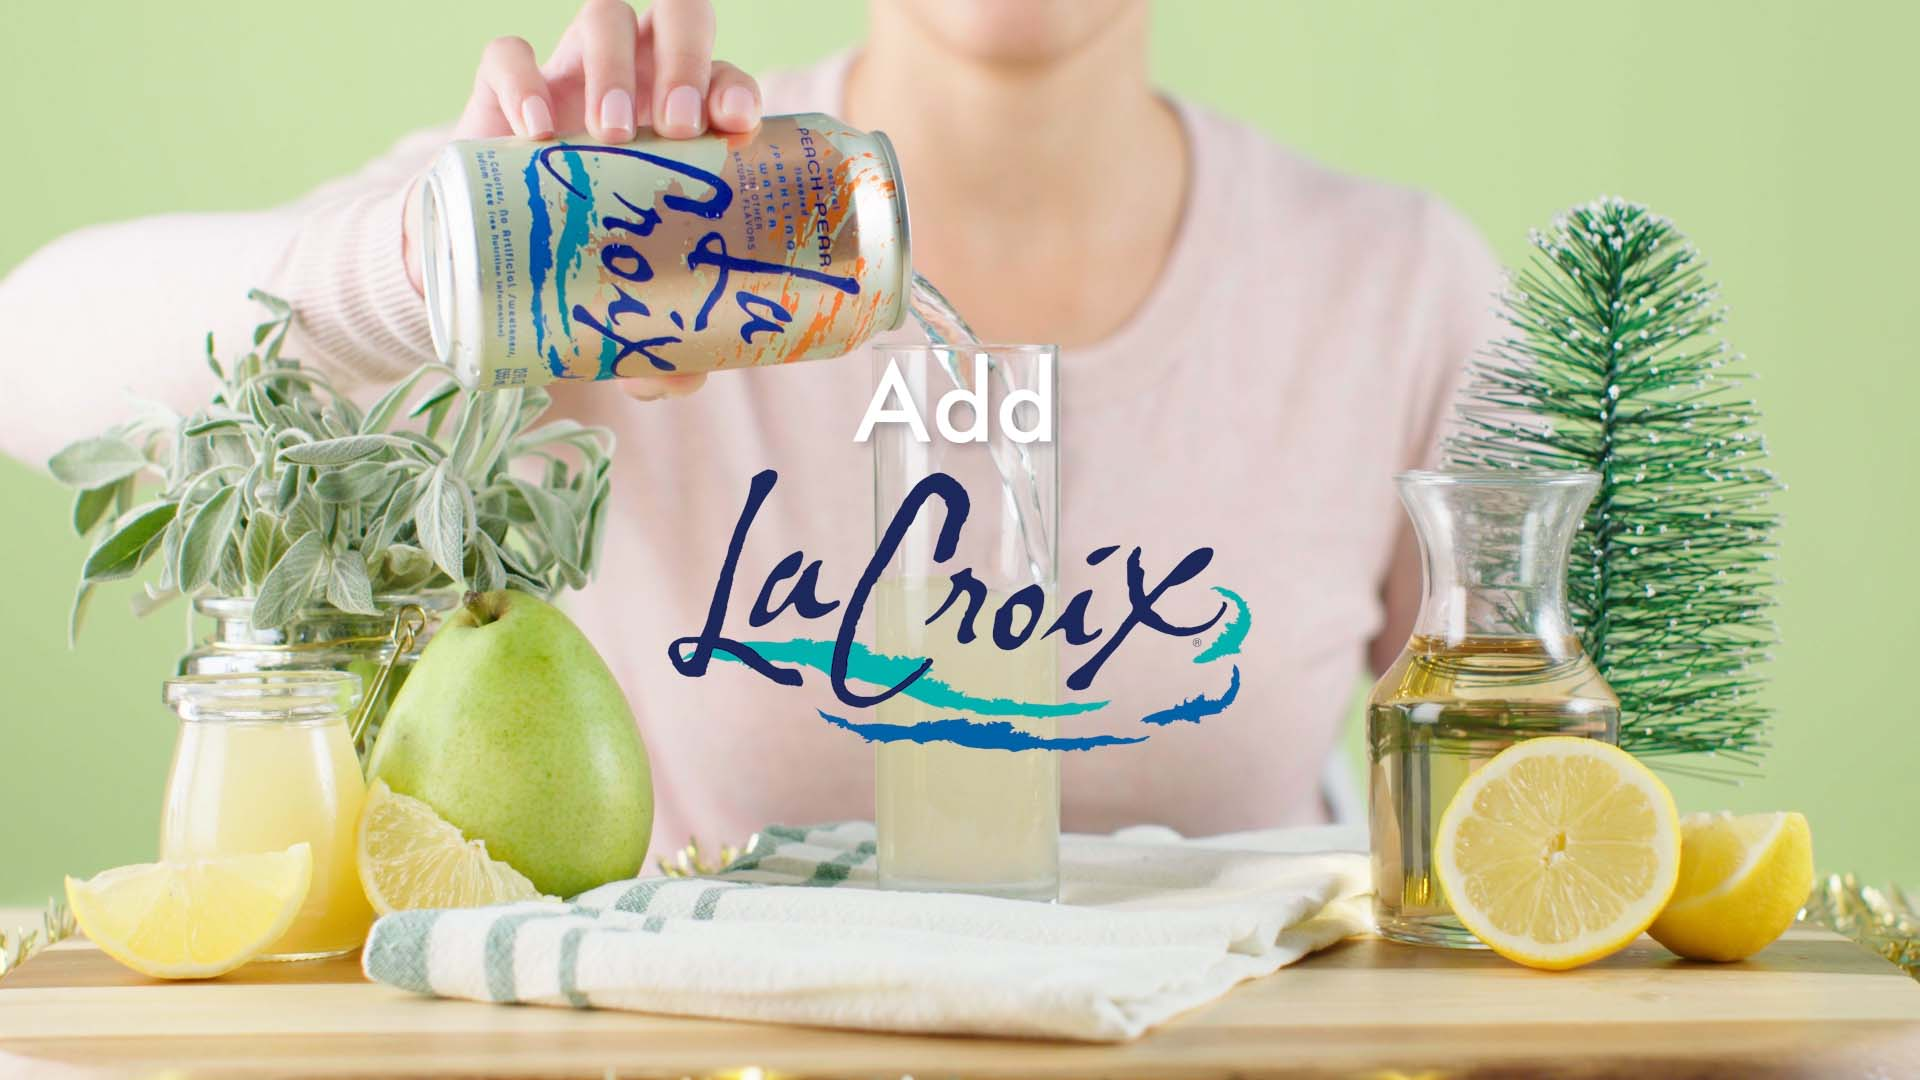 La Croix - our biggest social media client, lacroix counts on cafeteria's culinary know-how to deliver authentic content to an audience that expects it. Learn why they send us free lacroix below.